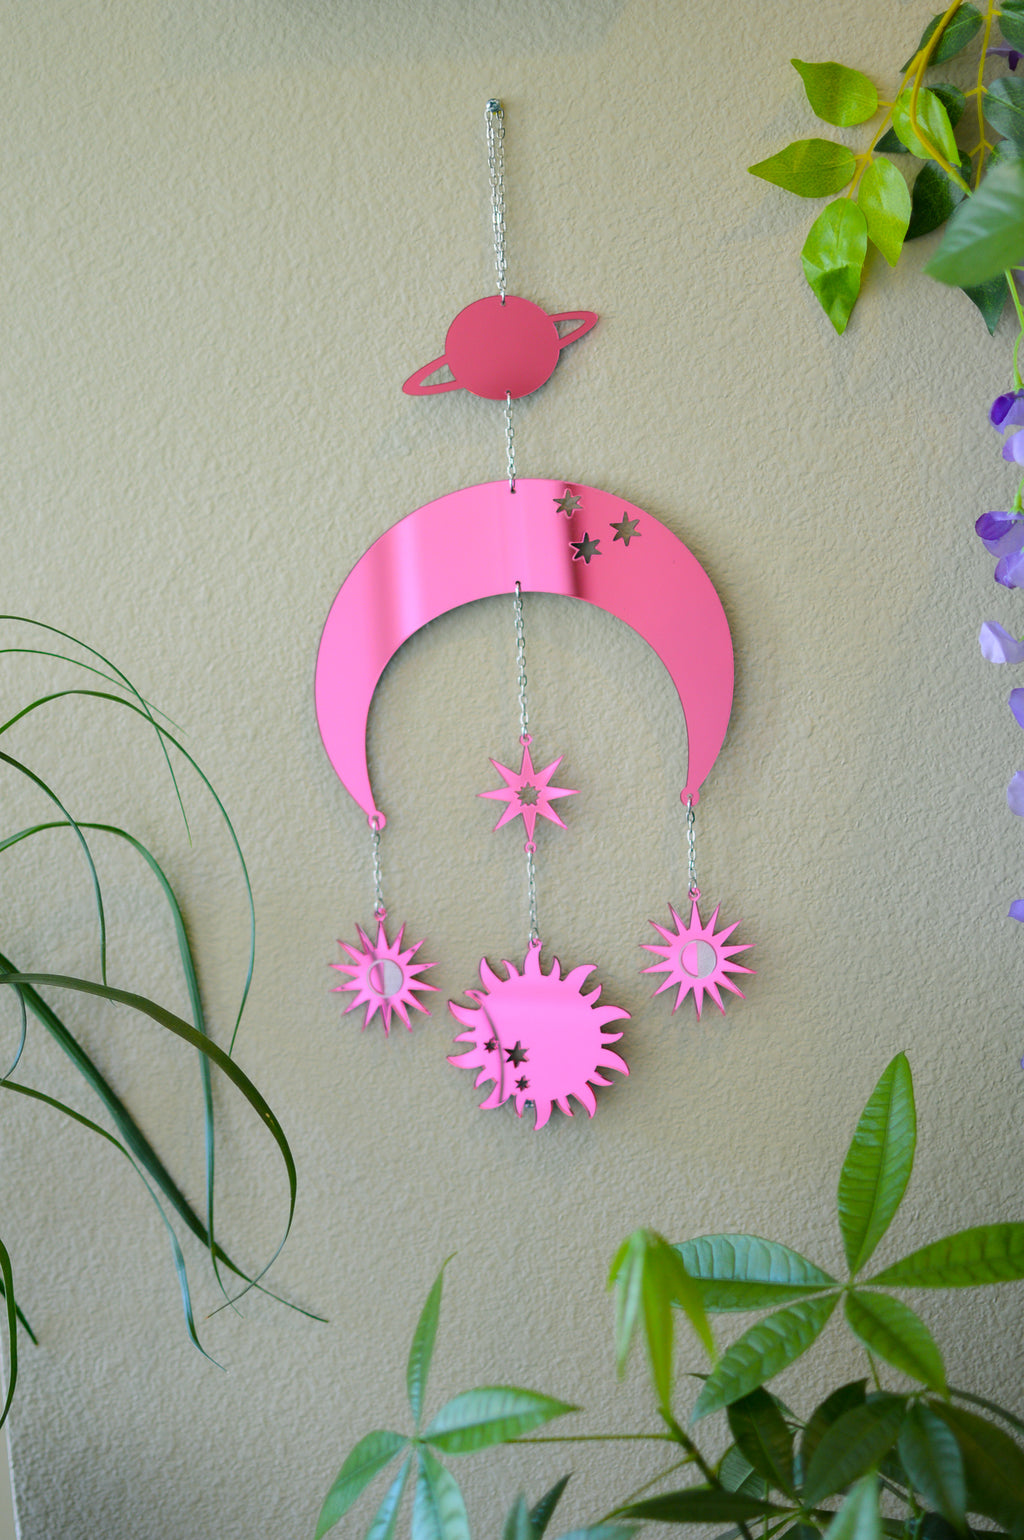 Moon & Sun Wall Hanger - Pink Mirror